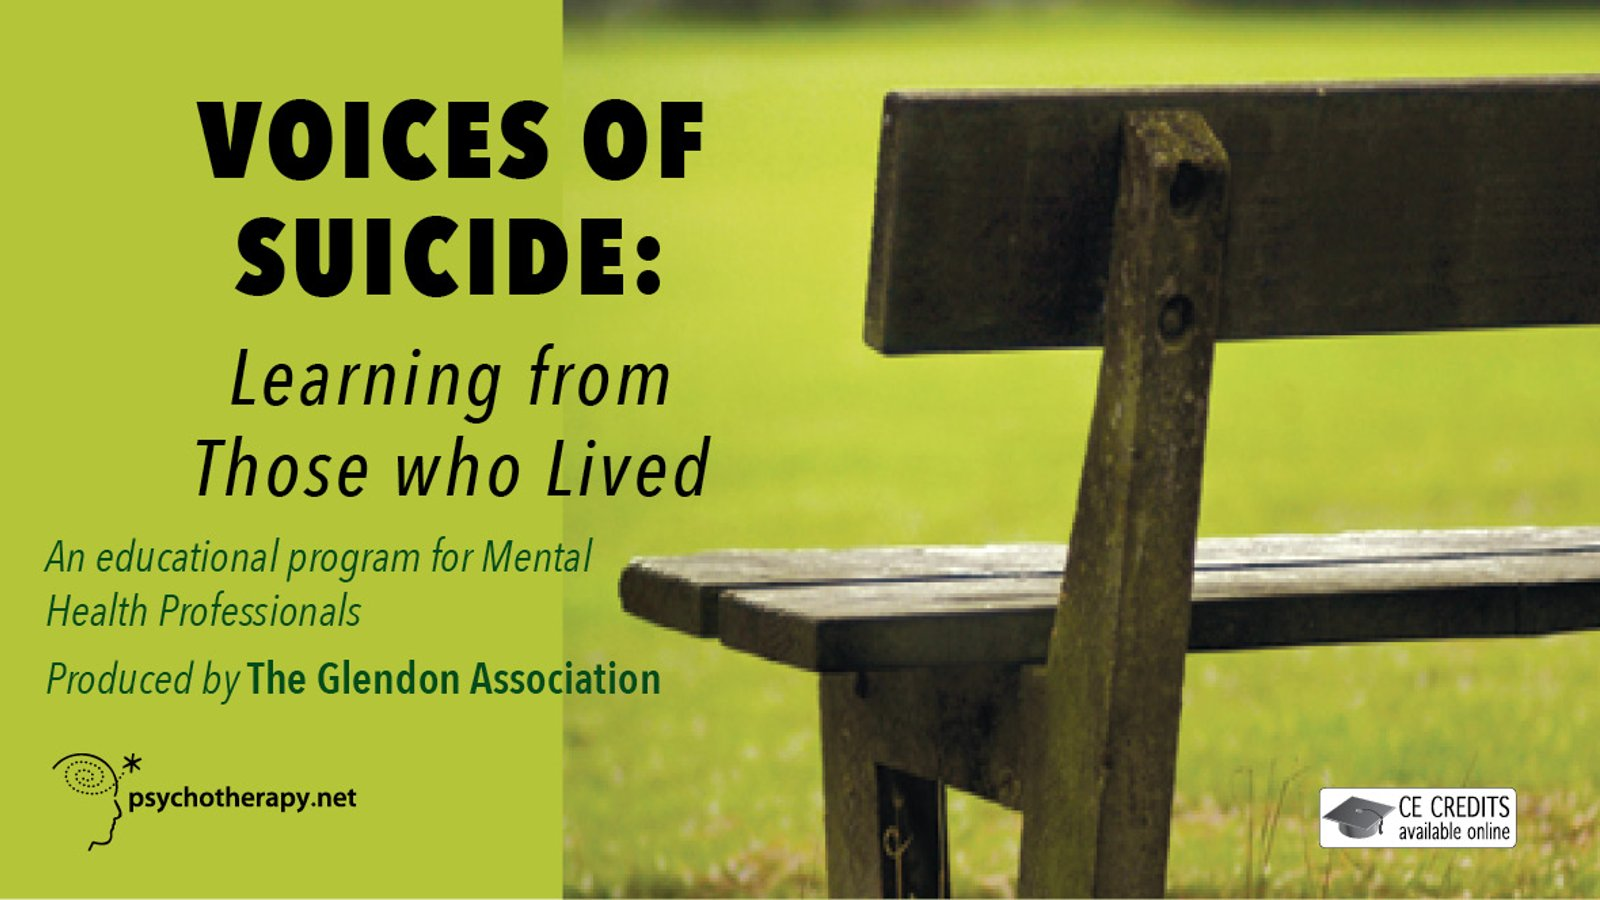 Voices of Suicide - Learning from Those who Lived